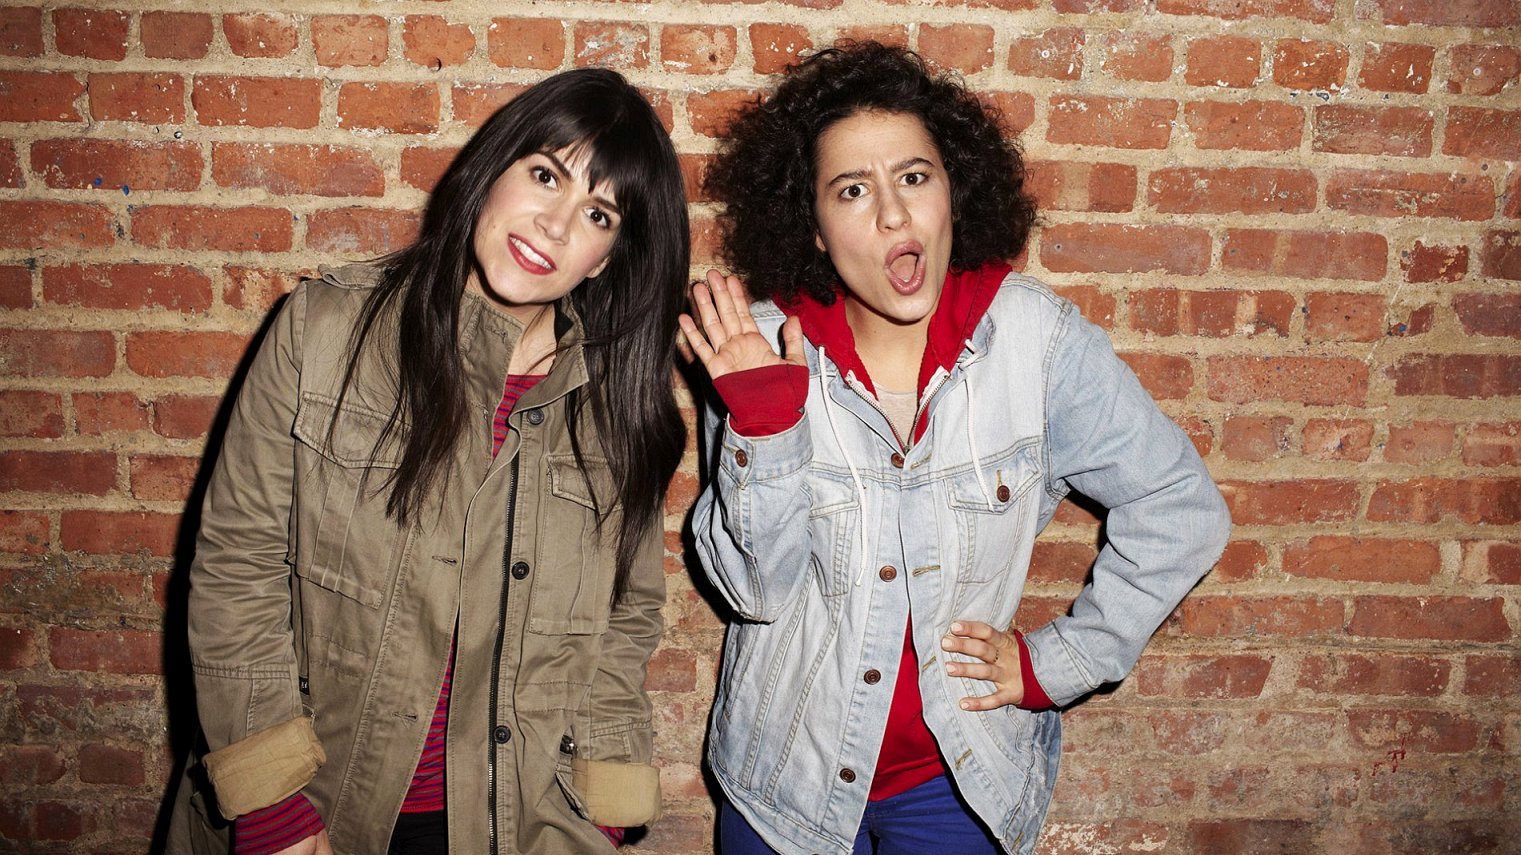 Broad City season 4 episode 5 watch online